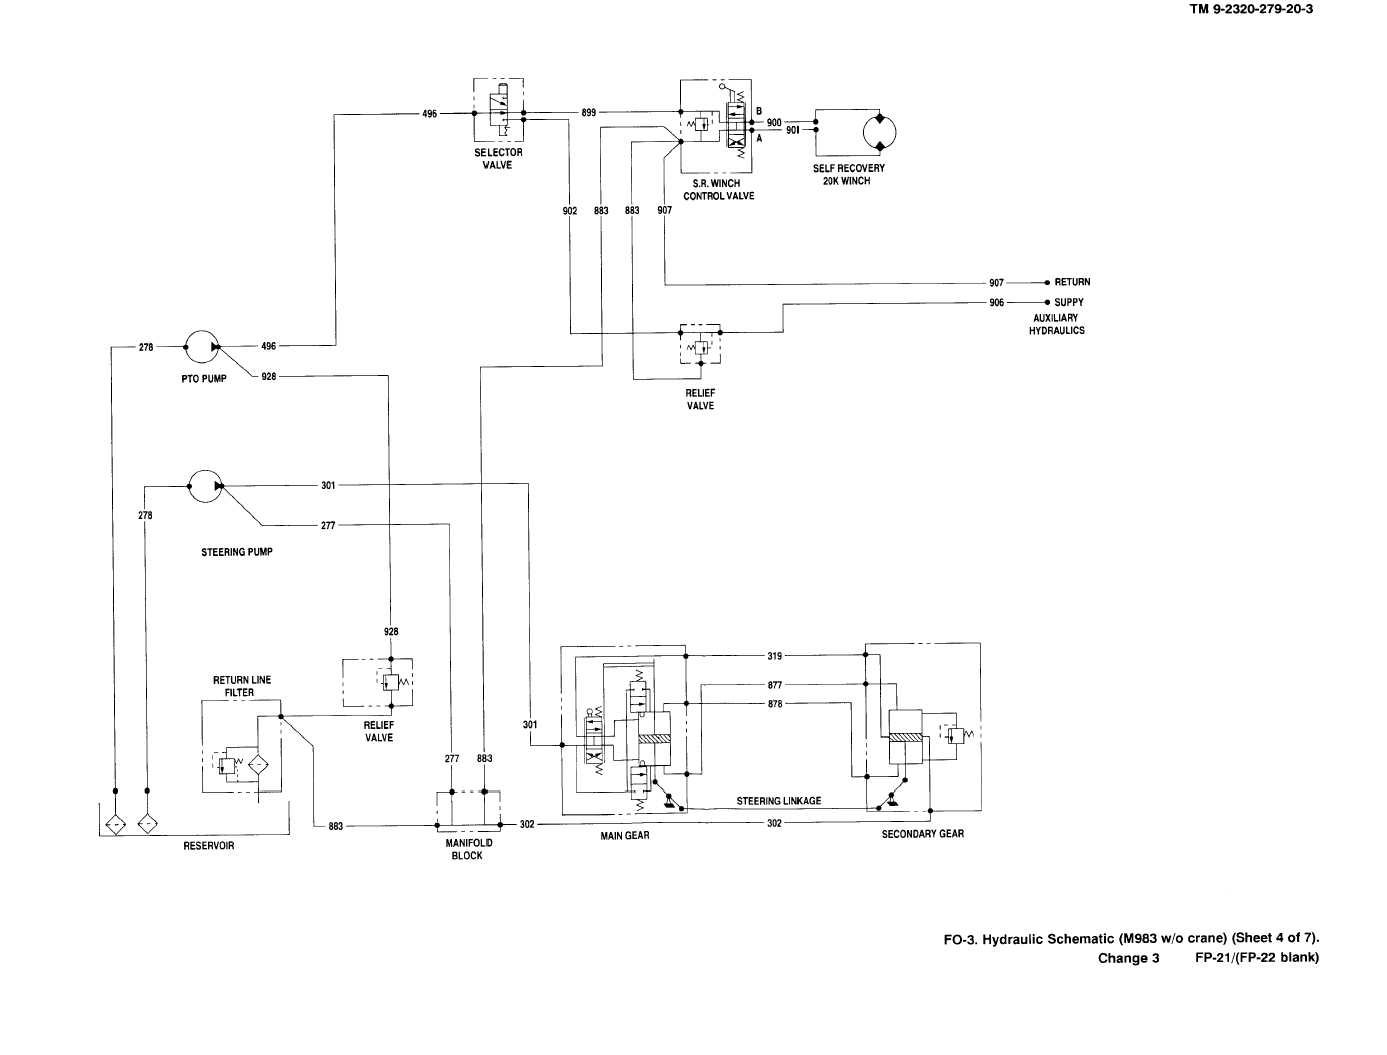 HYDRAULIC SCHEMATIC (M983 w/o crane) (SHEET 4 OF 7)